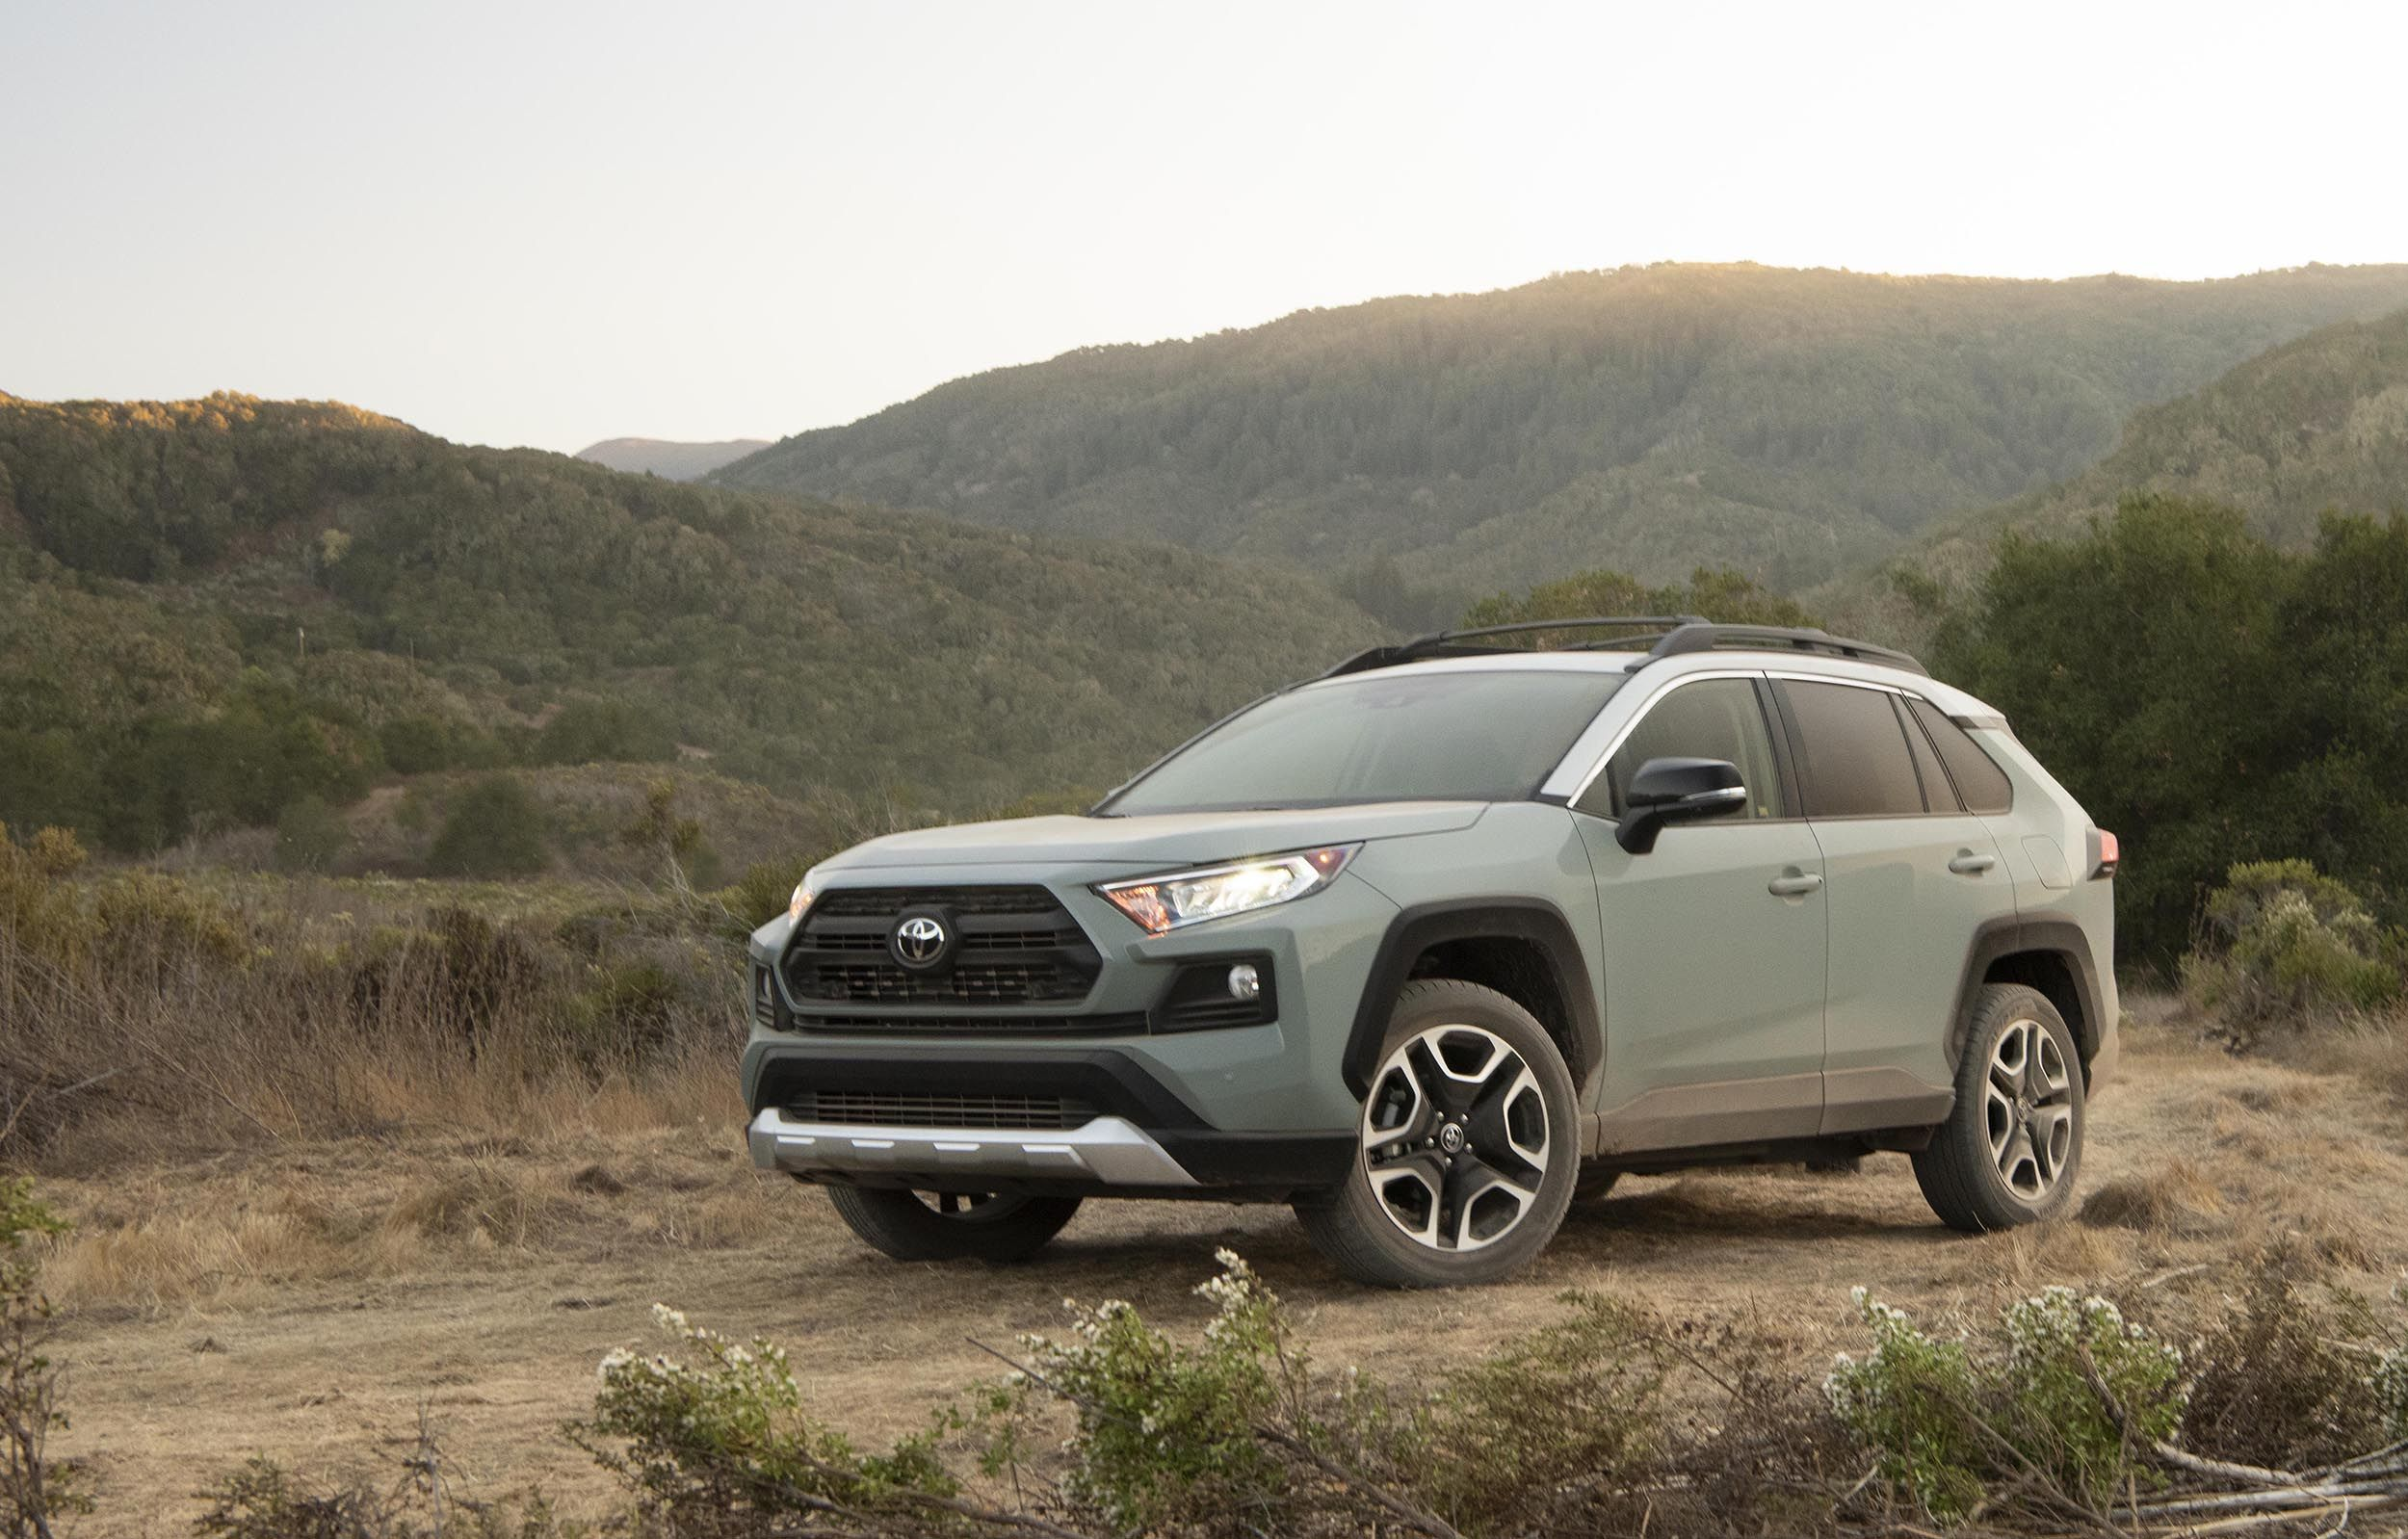 U.S. News & World Report has named the 2020 Toyota RAV4 as its Best Compact SUV for Families as part of its annual U.S. News Best Cars for Families awards. Click the link to see all the award winners.